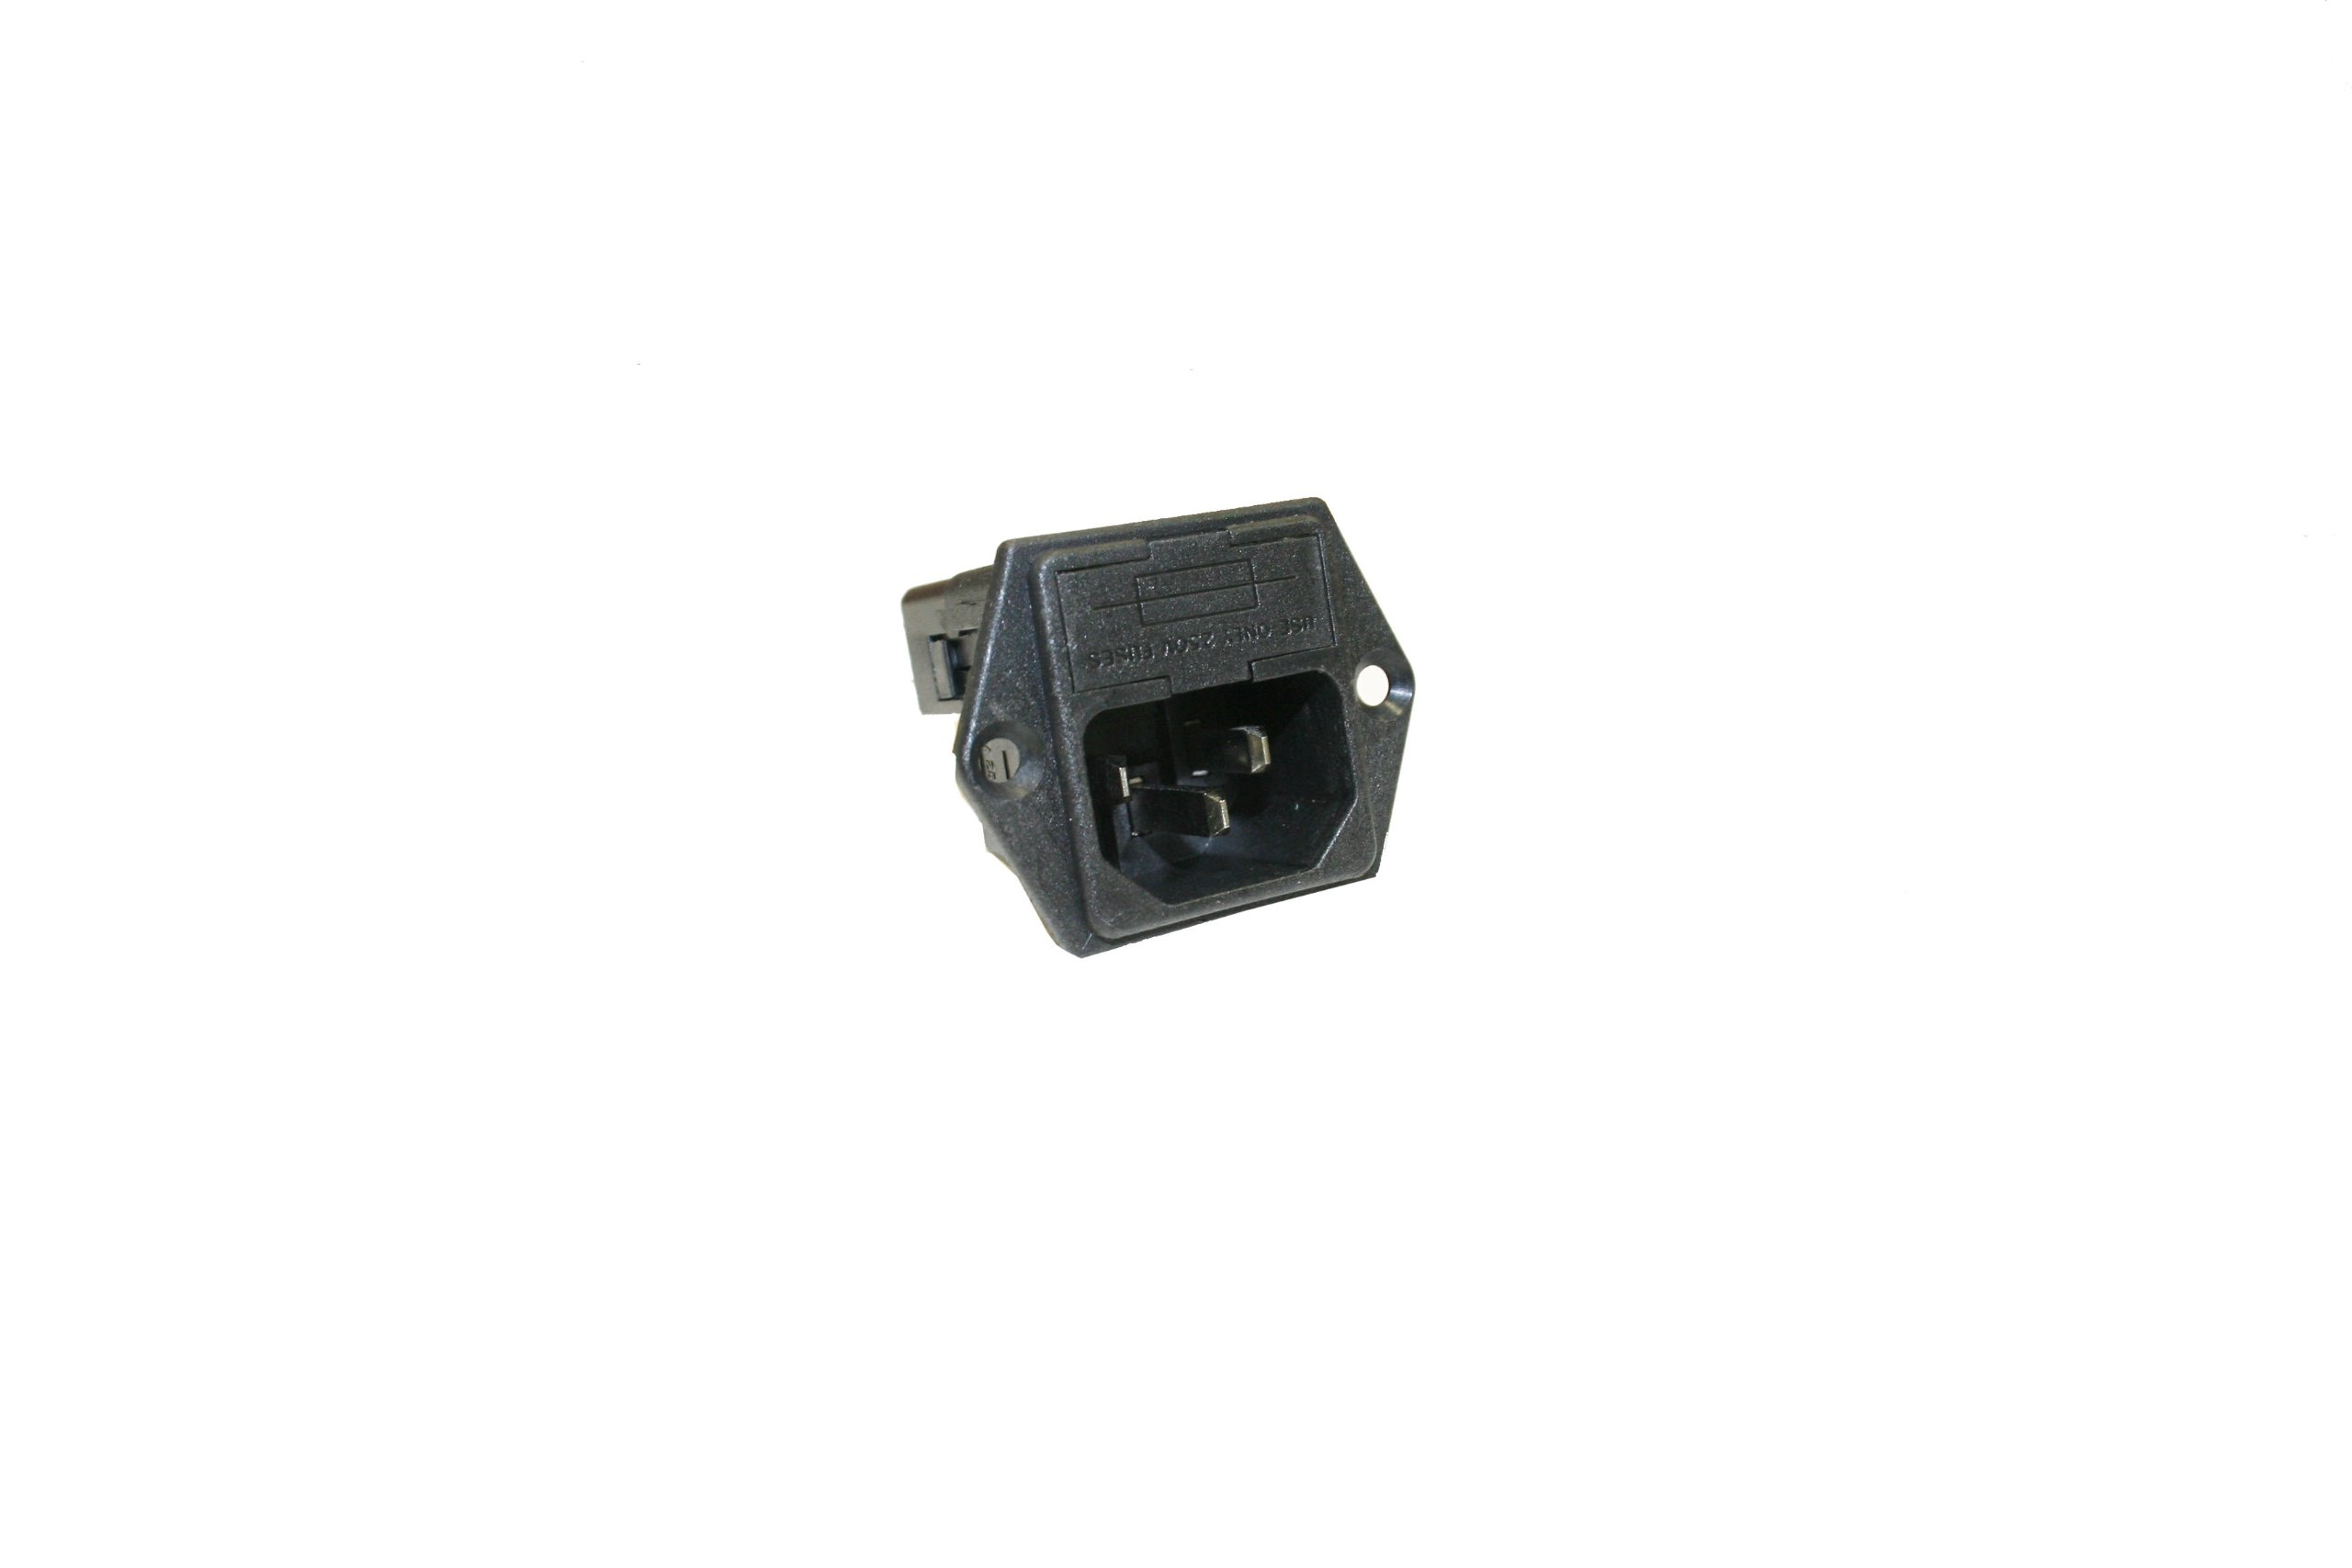 Interpower 83110170 Two Function Double Fused Module, C14 inlet, Double Fused, 10A Current Rating, 250VAC Voltage Rating